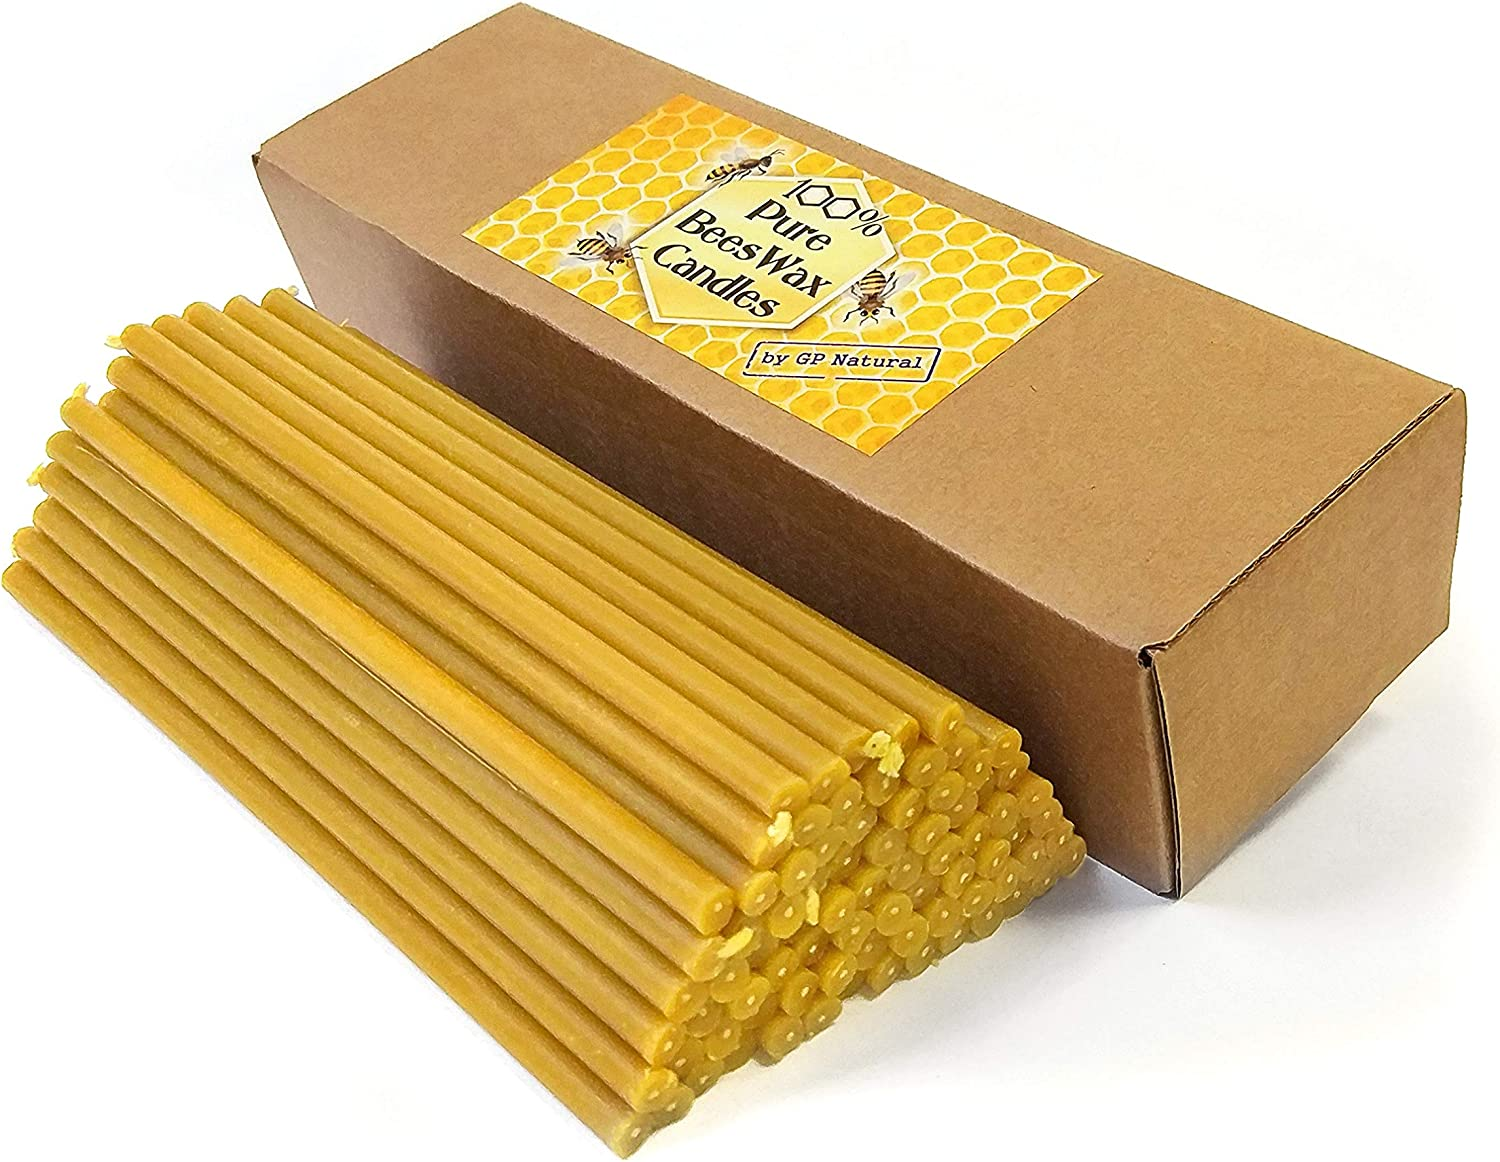 30pcs Natural Pure Beeswax Candles Organic Honey Eco Black Color Candles in Gift Box Black 8 Inches Natural Cotton Wicks, Dripless, Smokeless, Not Taper Candles 20 cm